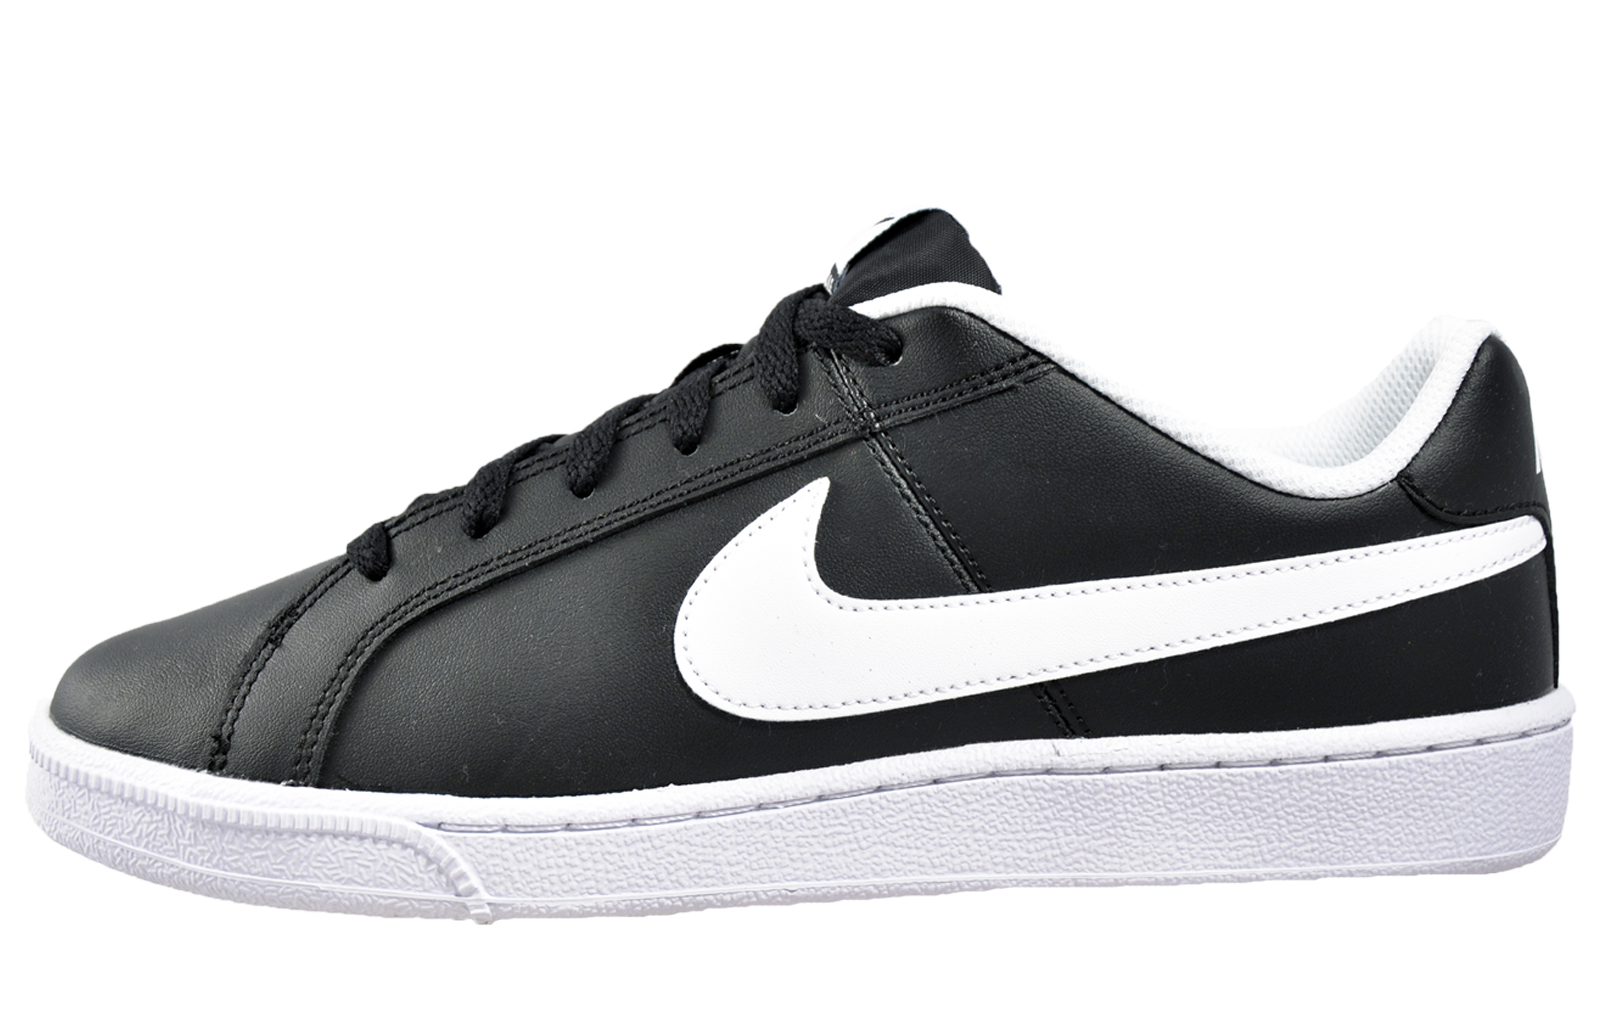 5704252303f572 Details about Nike Court Royale Mens Classic Retro Leather Trainers Black  New 2016